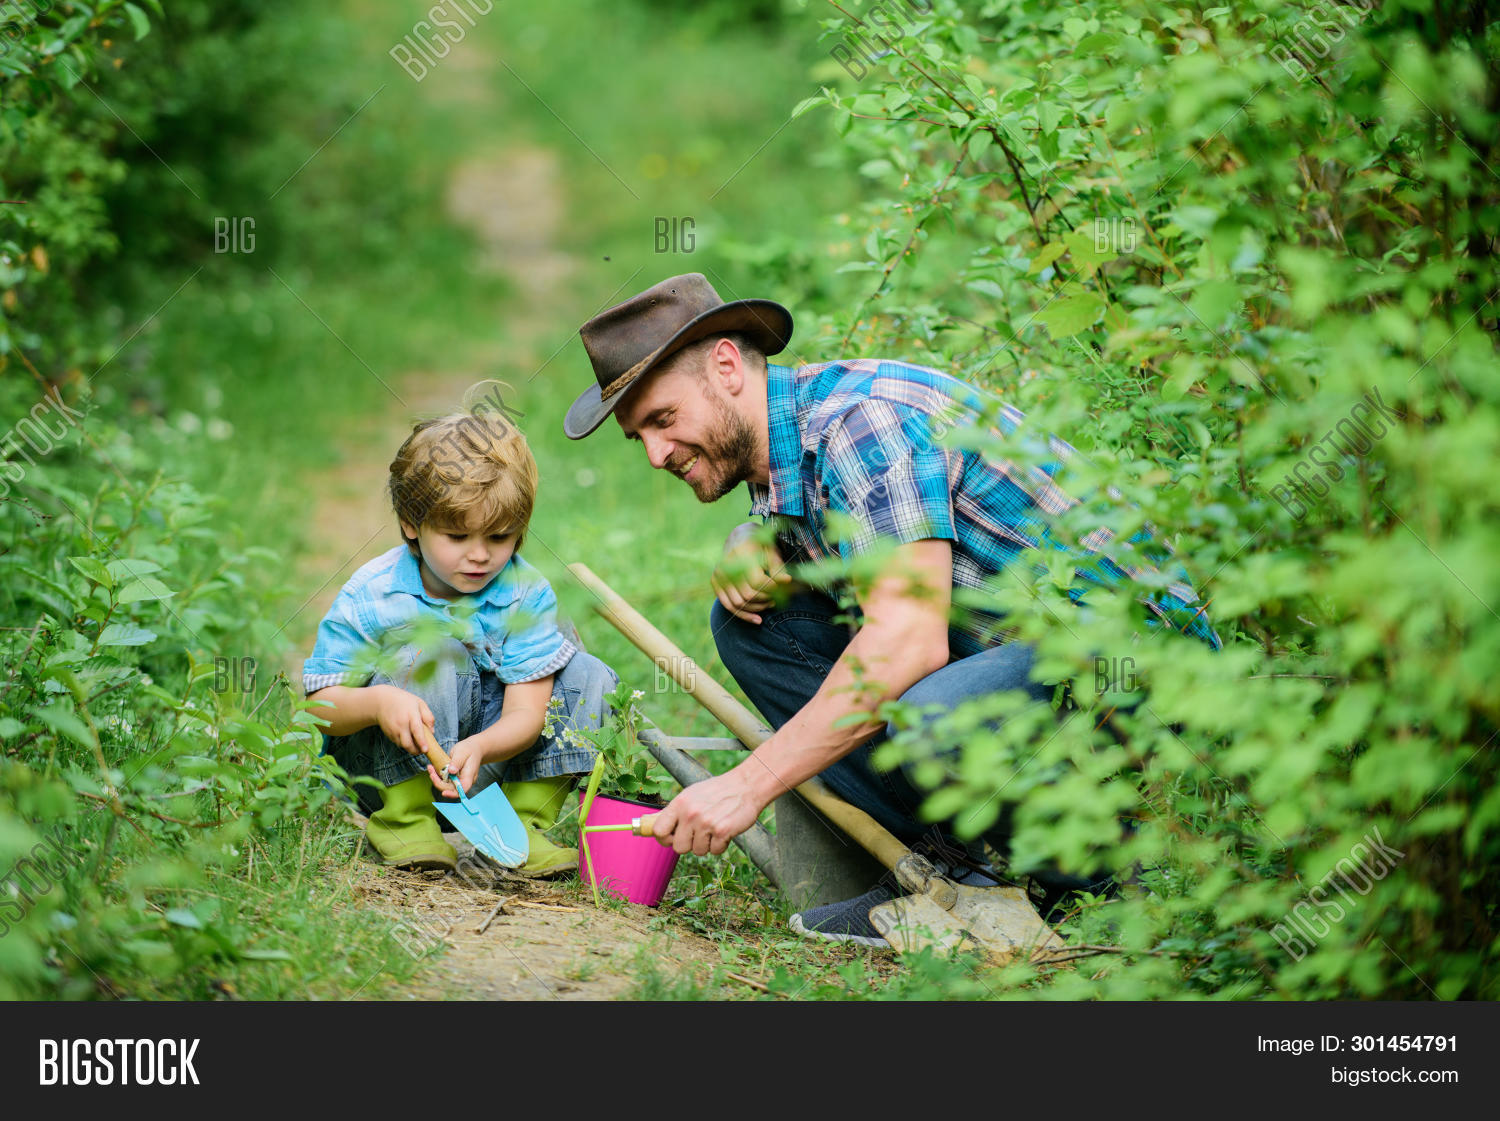 adorable,background,boy,care,child,childhood,country,dad,day,digging,earth,eco,family,farm,father,fertility,fertilizers,flower,garden,gardening,green,growth,happy,helper,hobby,hole,kid,little,love,male,man,meadow,nature,planting,plants,routine,soil,son,spring,teaching,tools